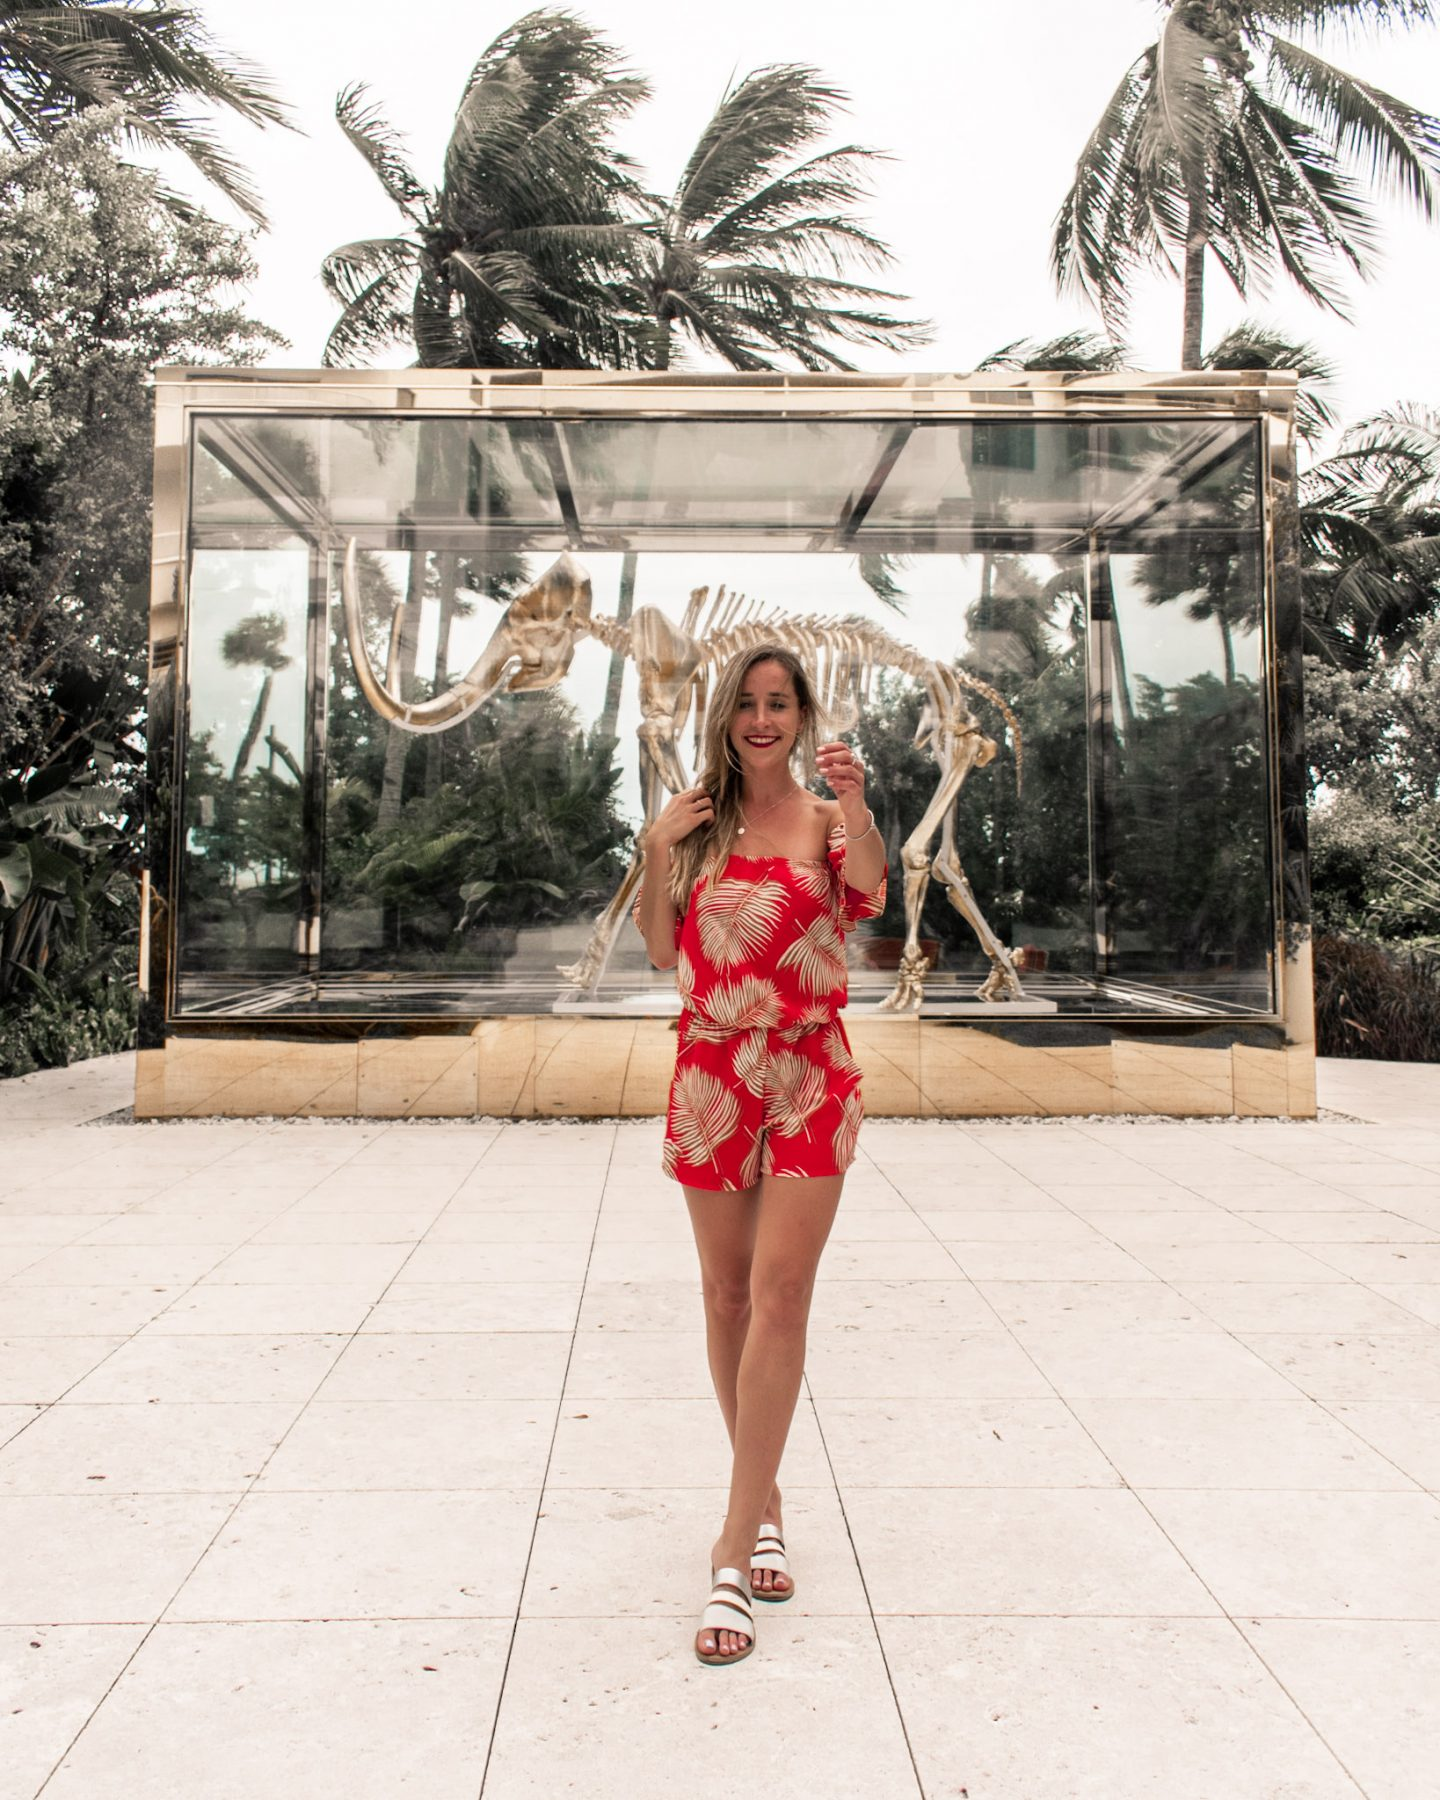 Faena hotel wooly mammoth in south beach miami